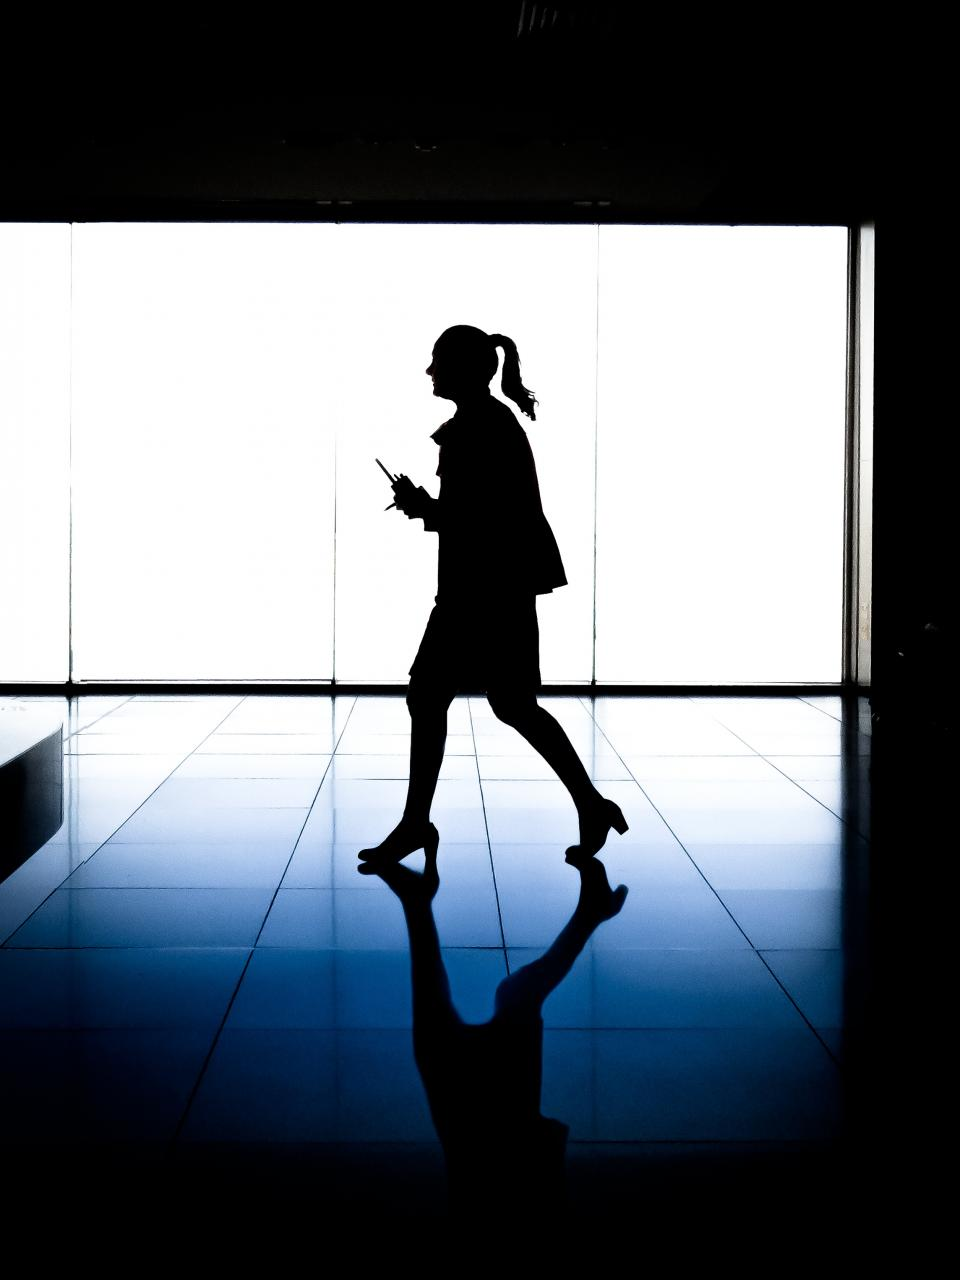 dark silhouette lights floor reflection people woman girl female business office